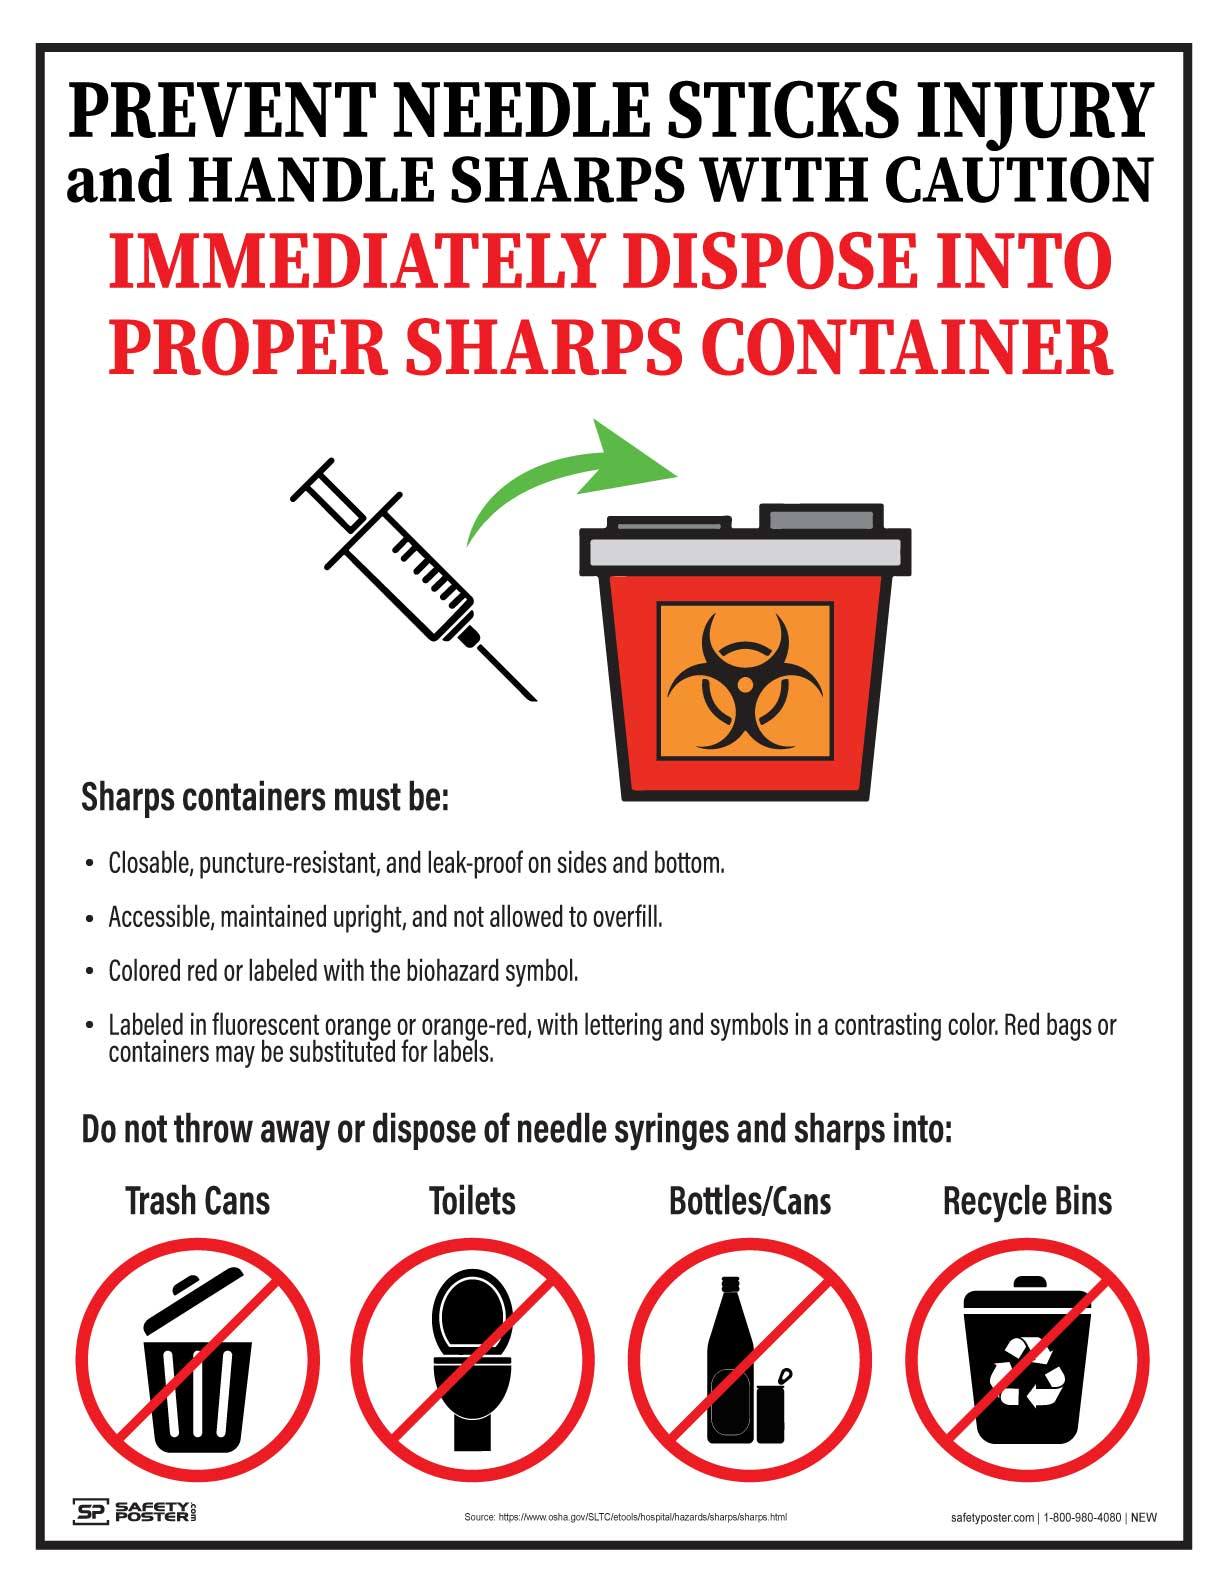 Prevent Needle Sticks Injury, Handle Sharps With Caution - Safety Poster